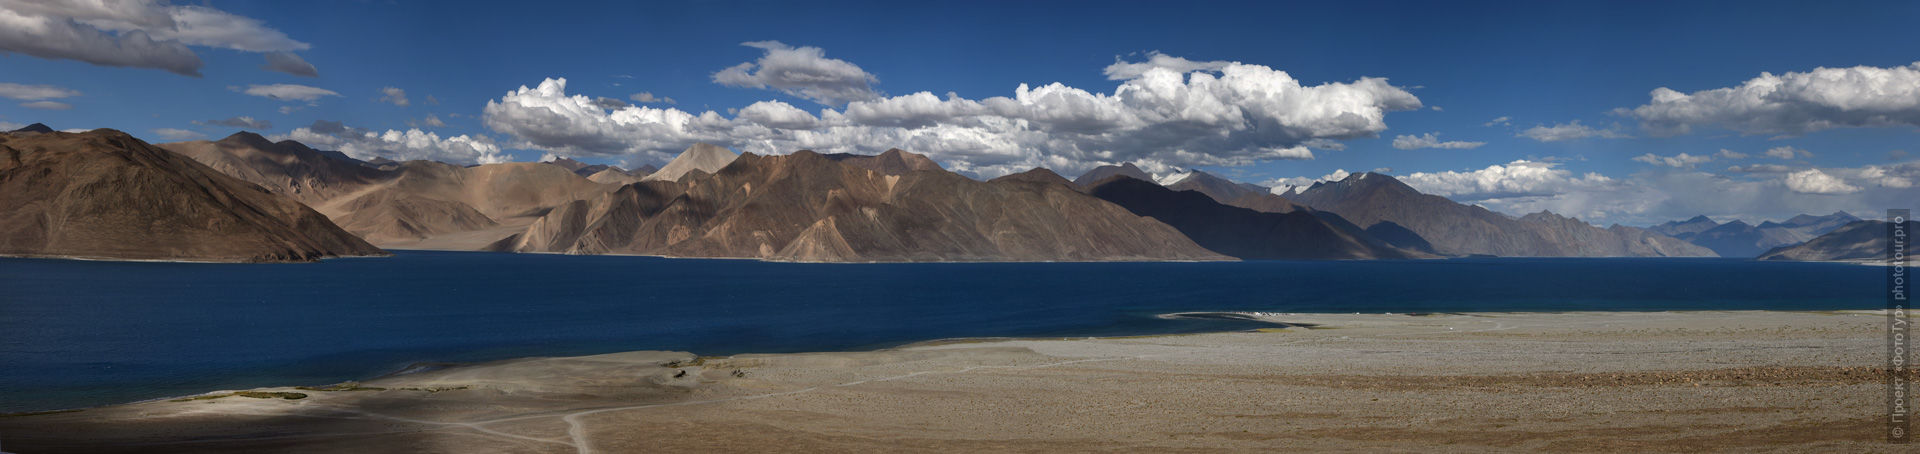 Pangong Tso Lake. Photo tour / tour Tibet of Lake-1: Pangong, Tso Moriri, Tso Kar, Tso Chiagar, Dance of Tsam on Lake Pangong, 19.06. - 28.06.2021.